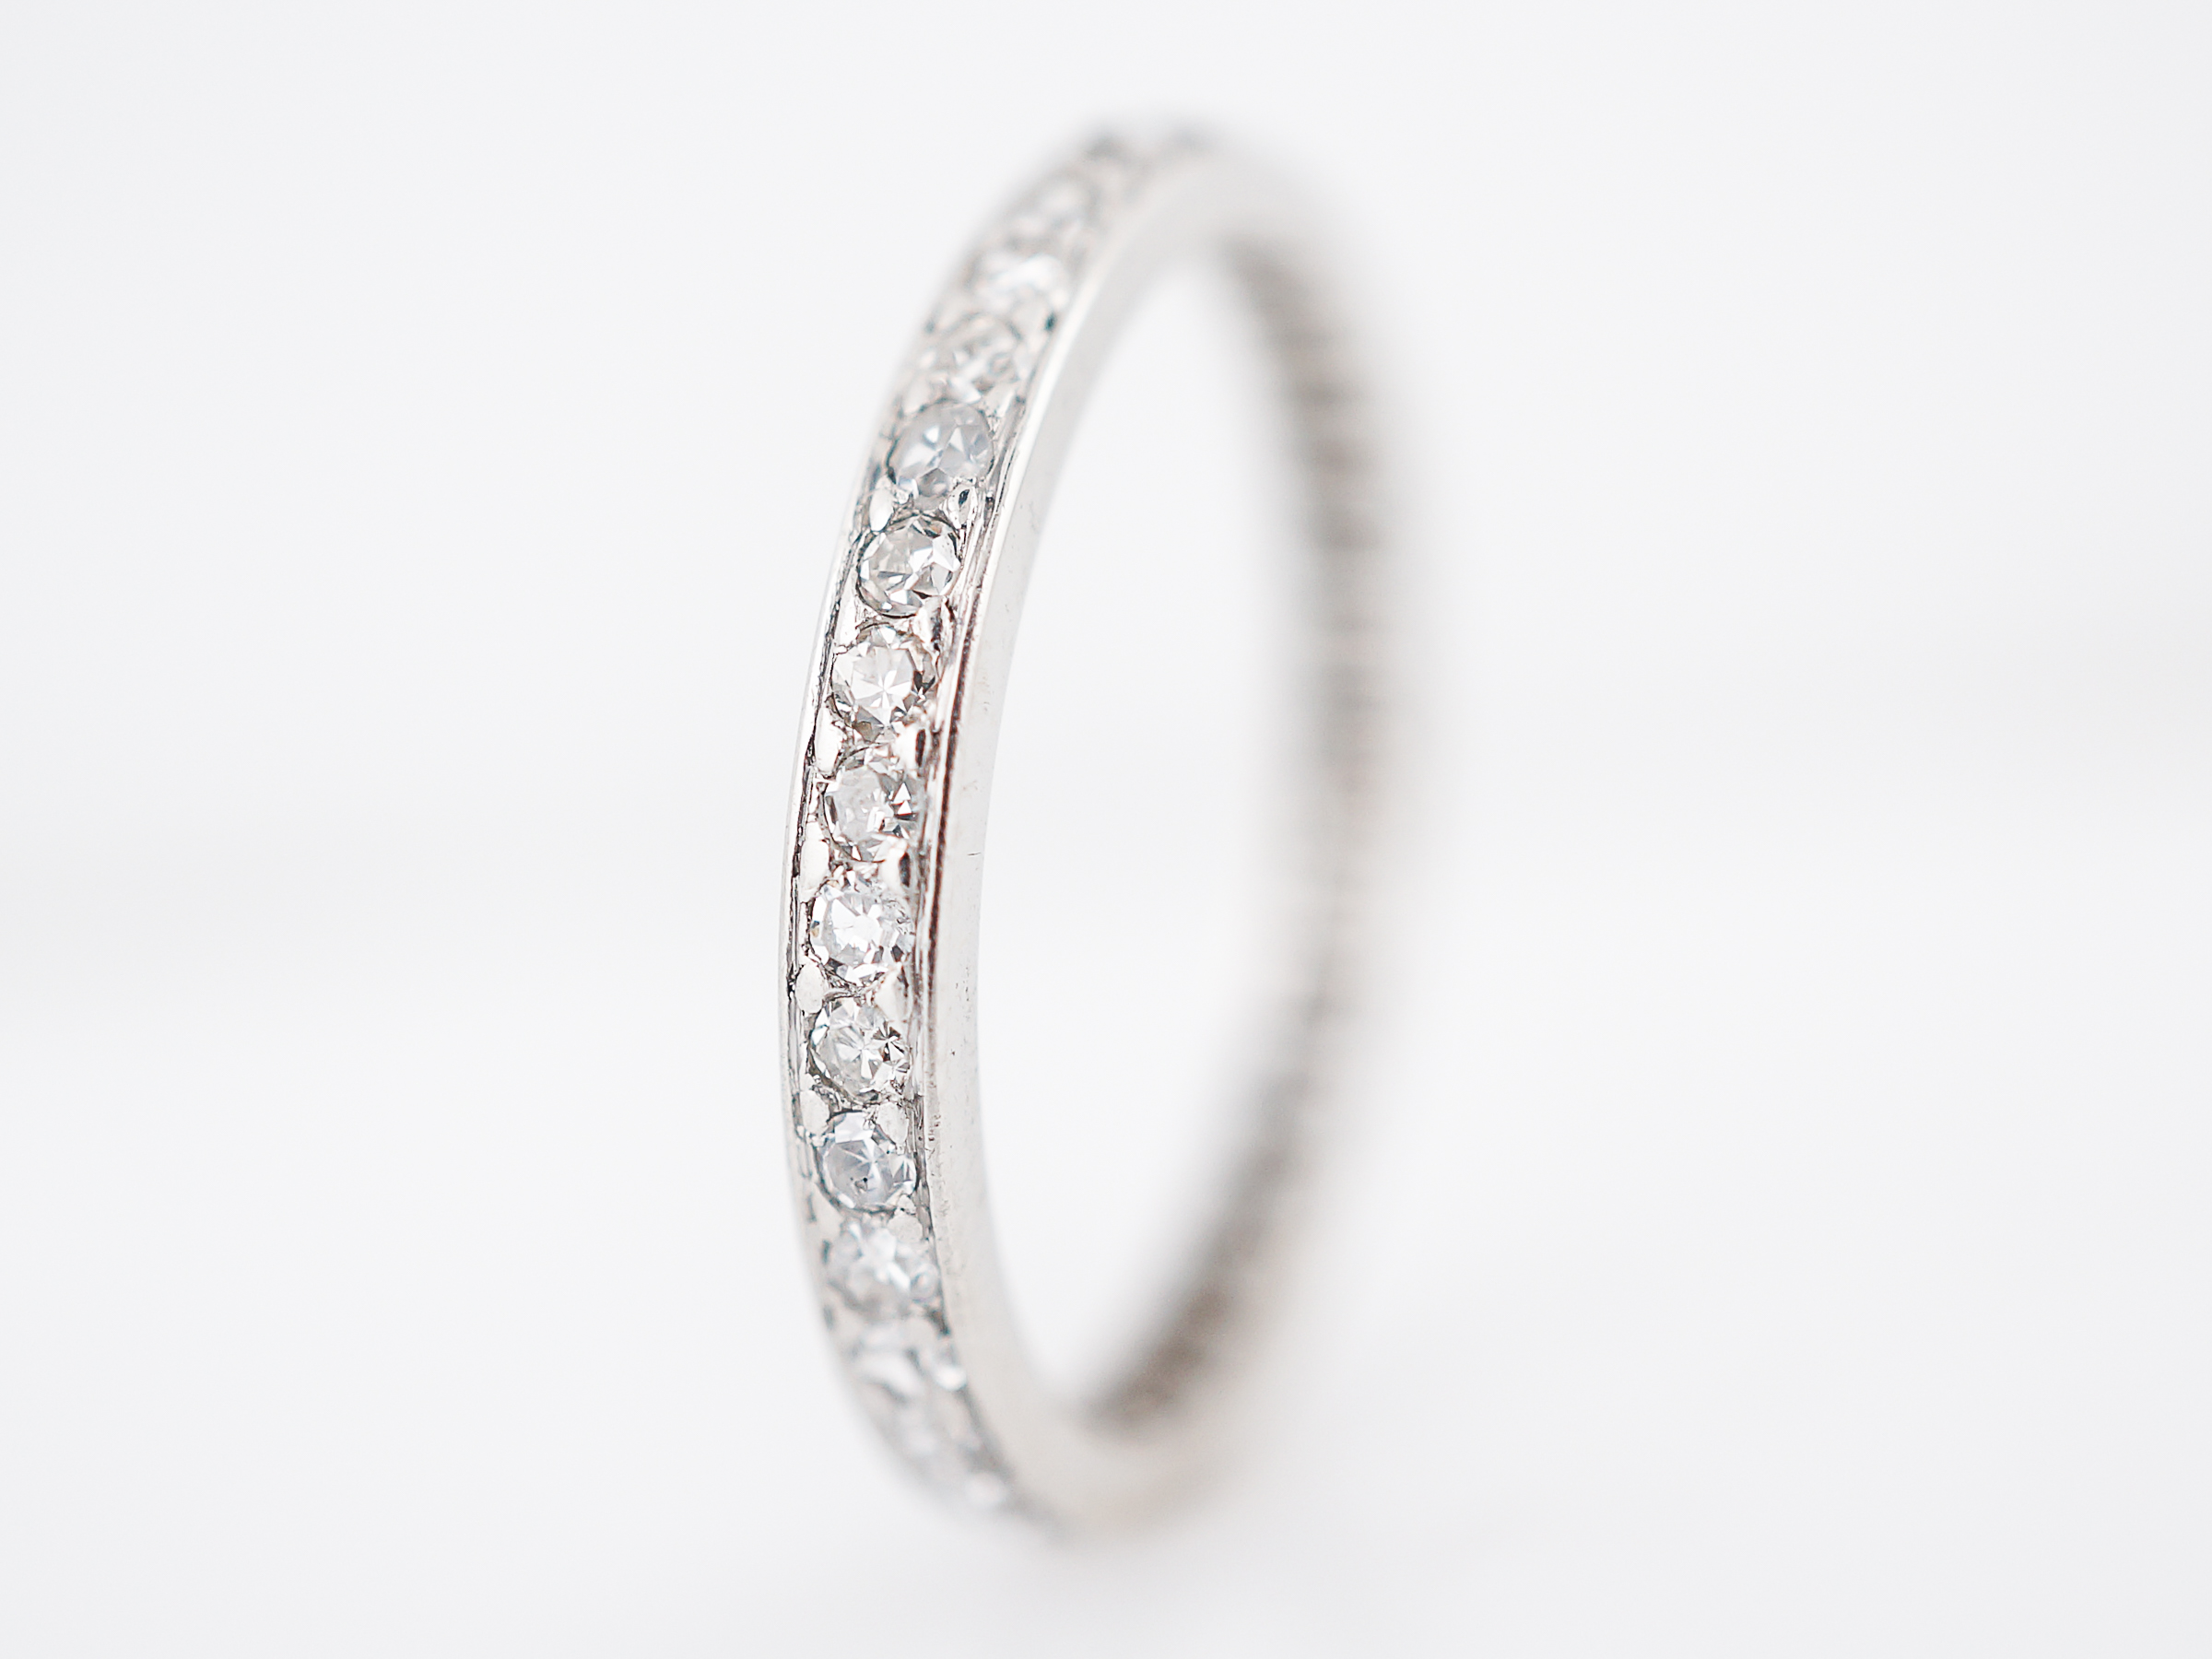 bands size ring page e band wedding thin help topic with thick thinthick platinum closed and